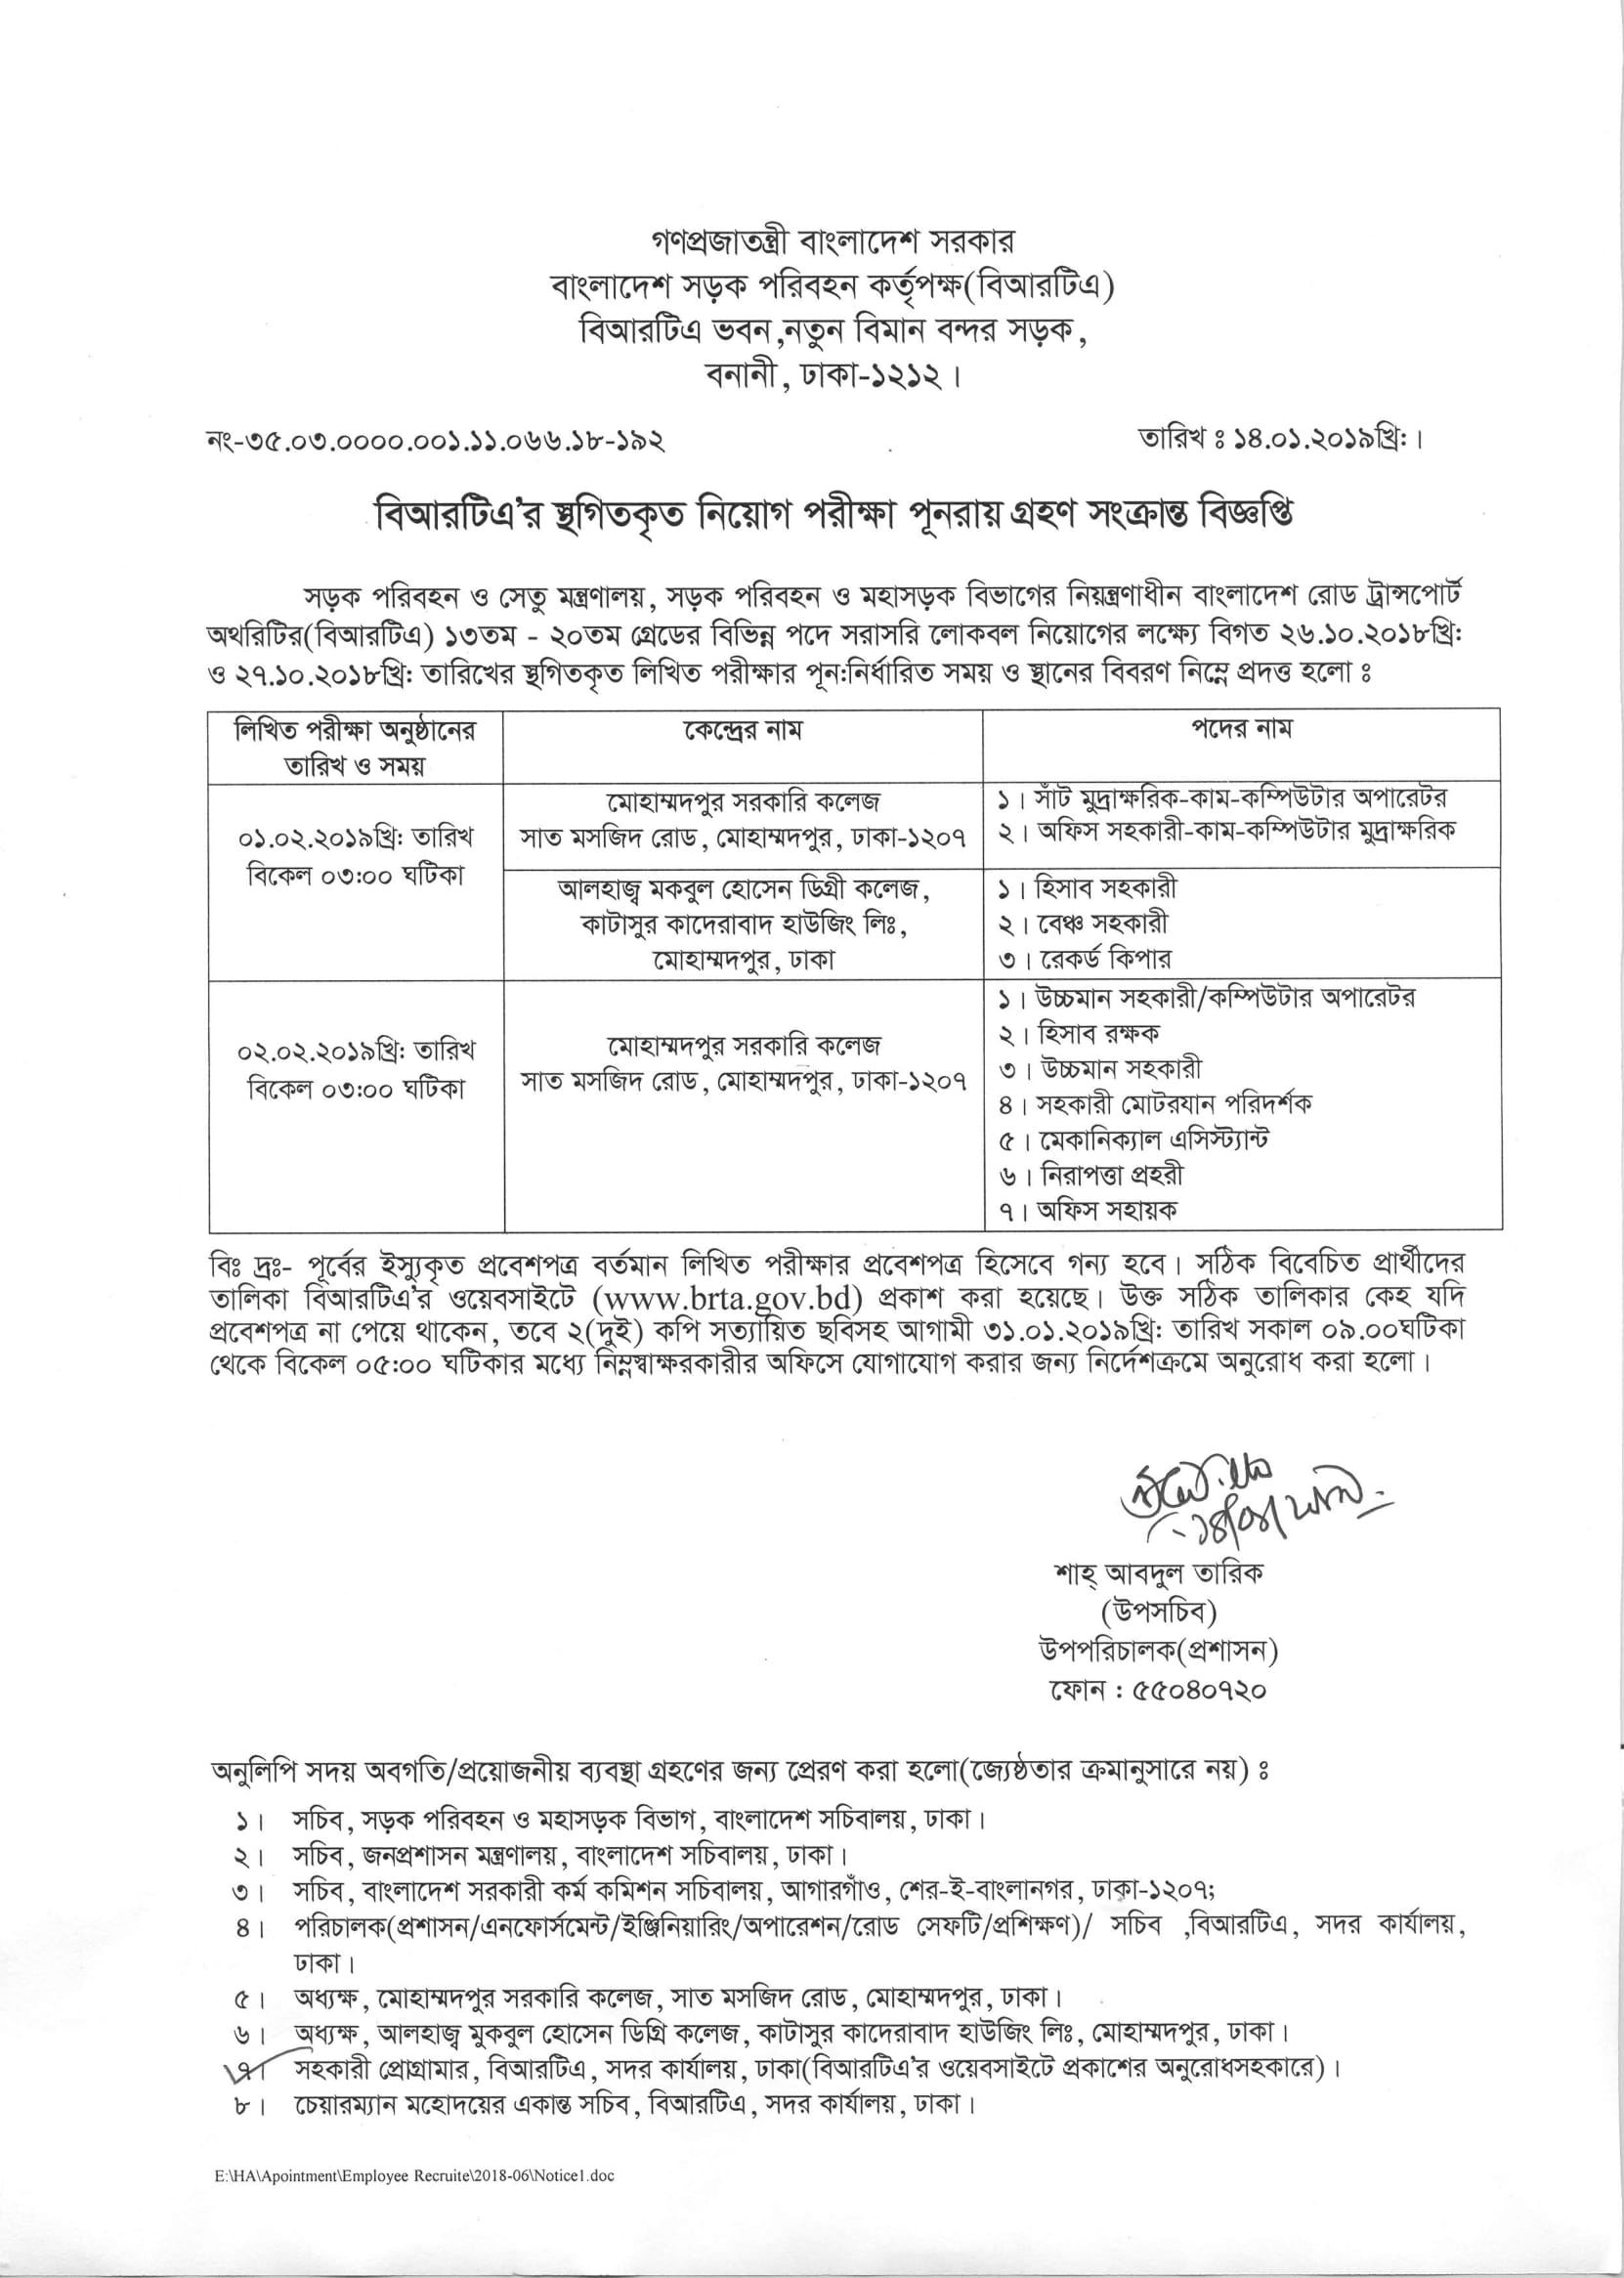 Bangladesh Road Transport Authority BRTA Job Circular Result 2019 1